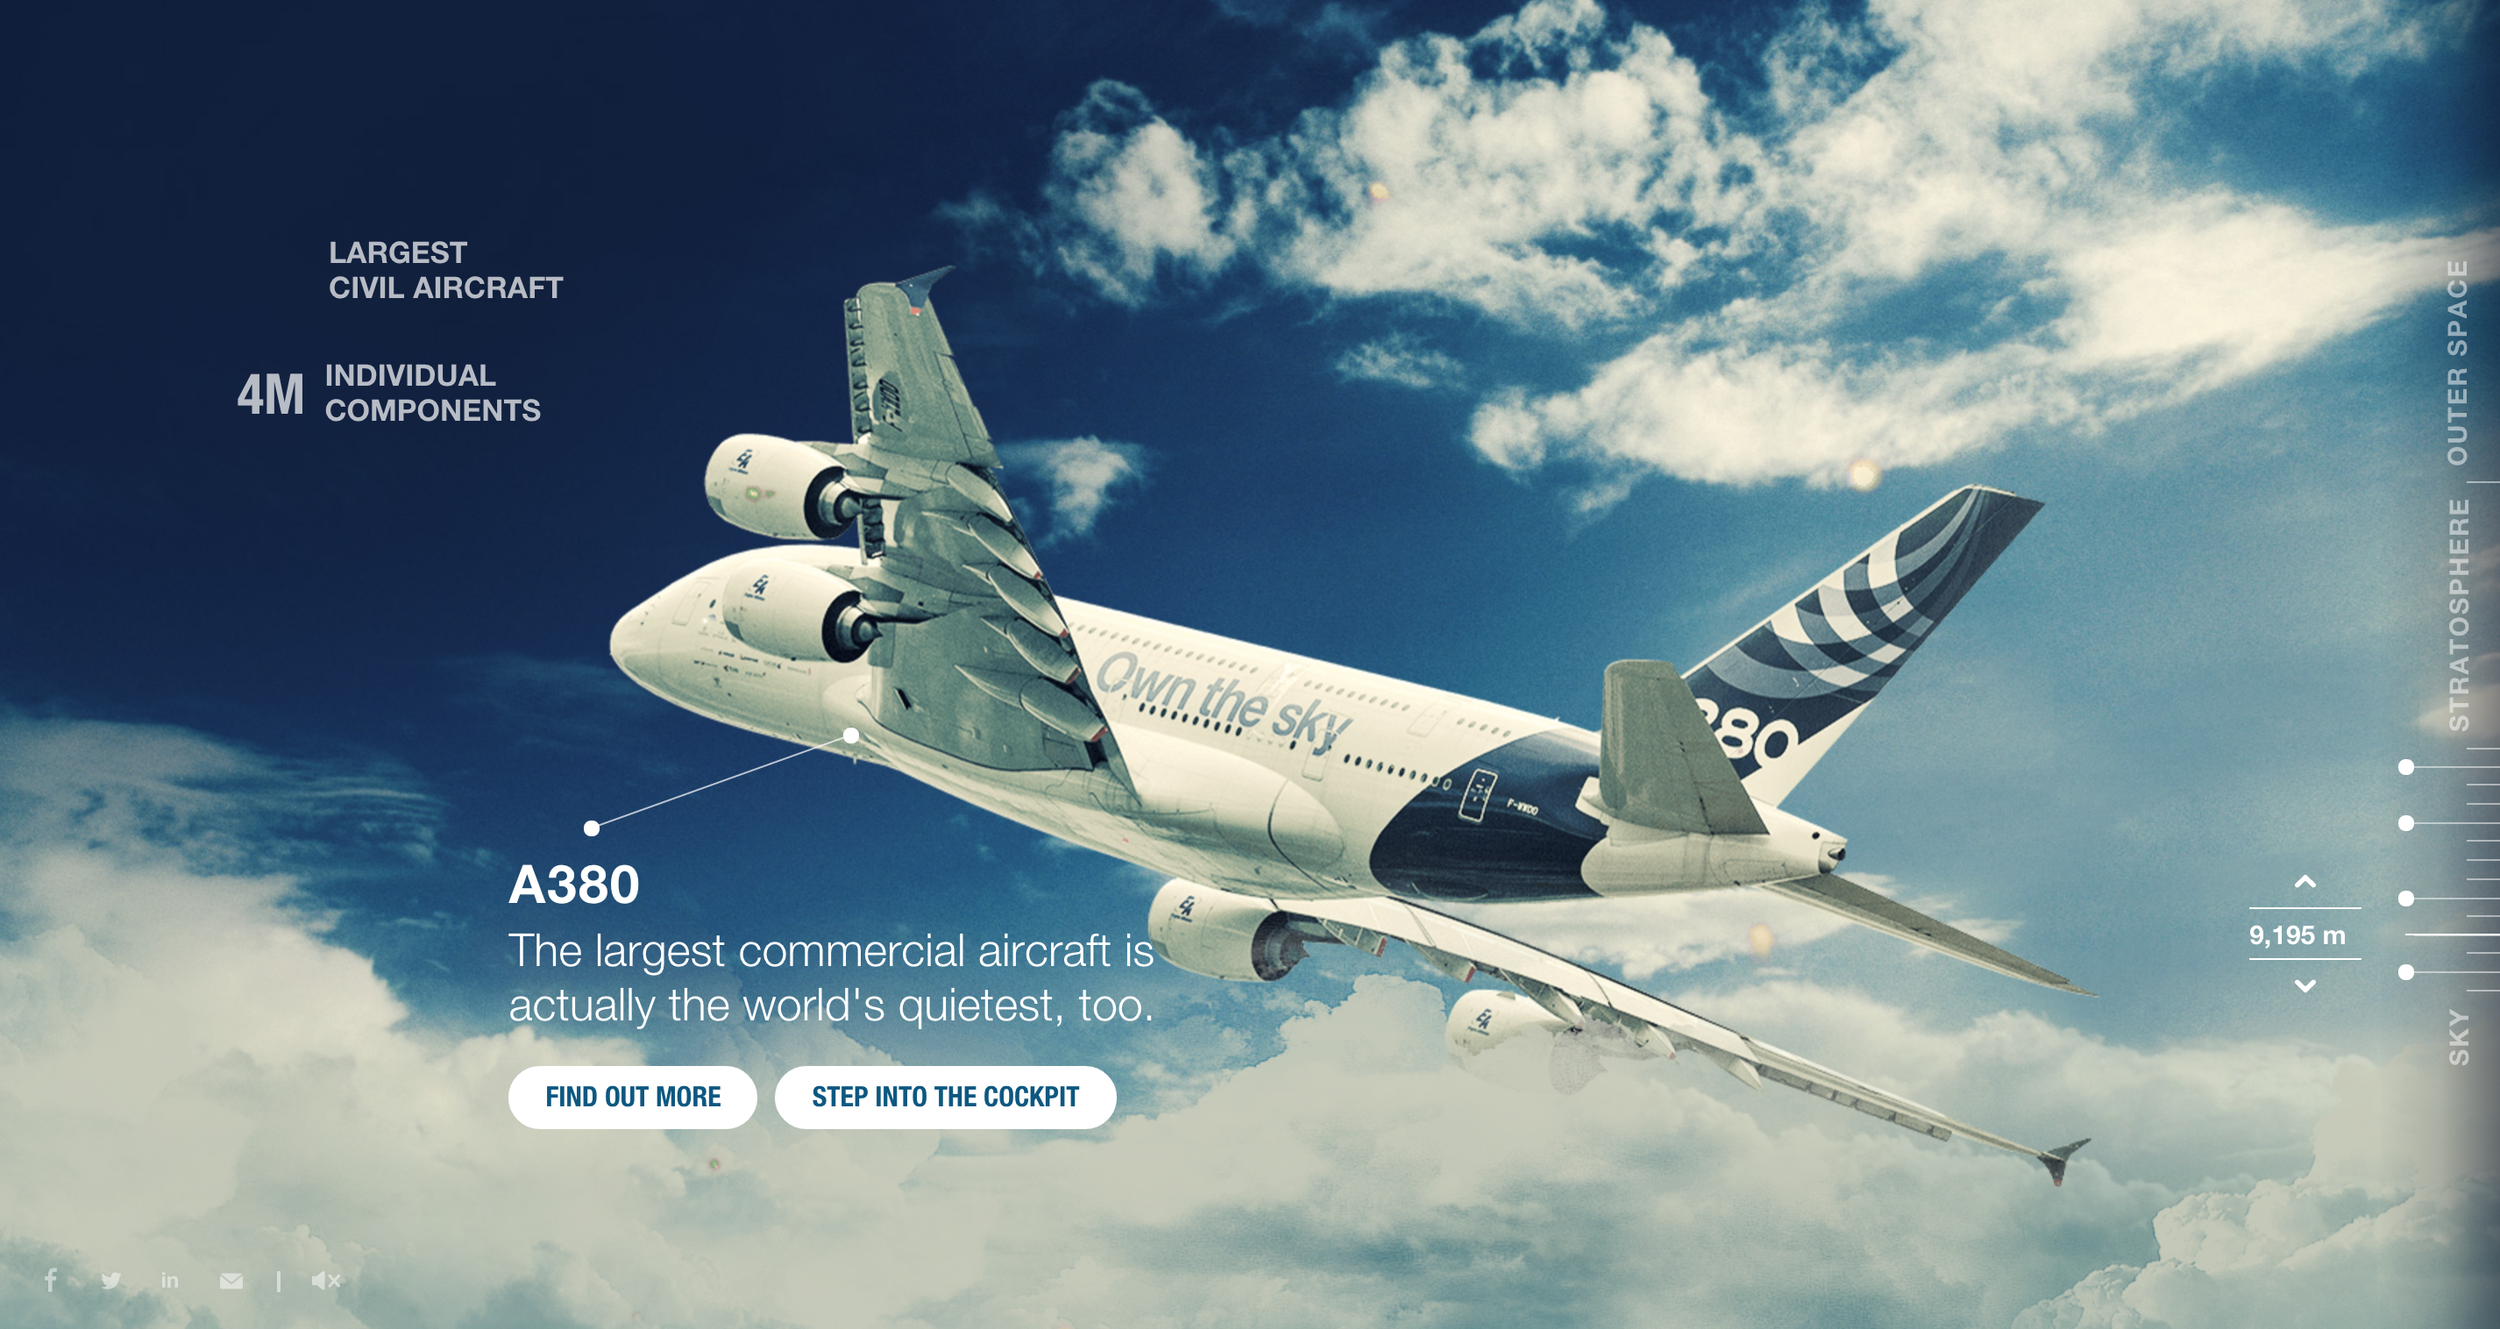 The Sky Is Not The Limit micro site featuring the most popular aircraft and technology from the Airbus Group.